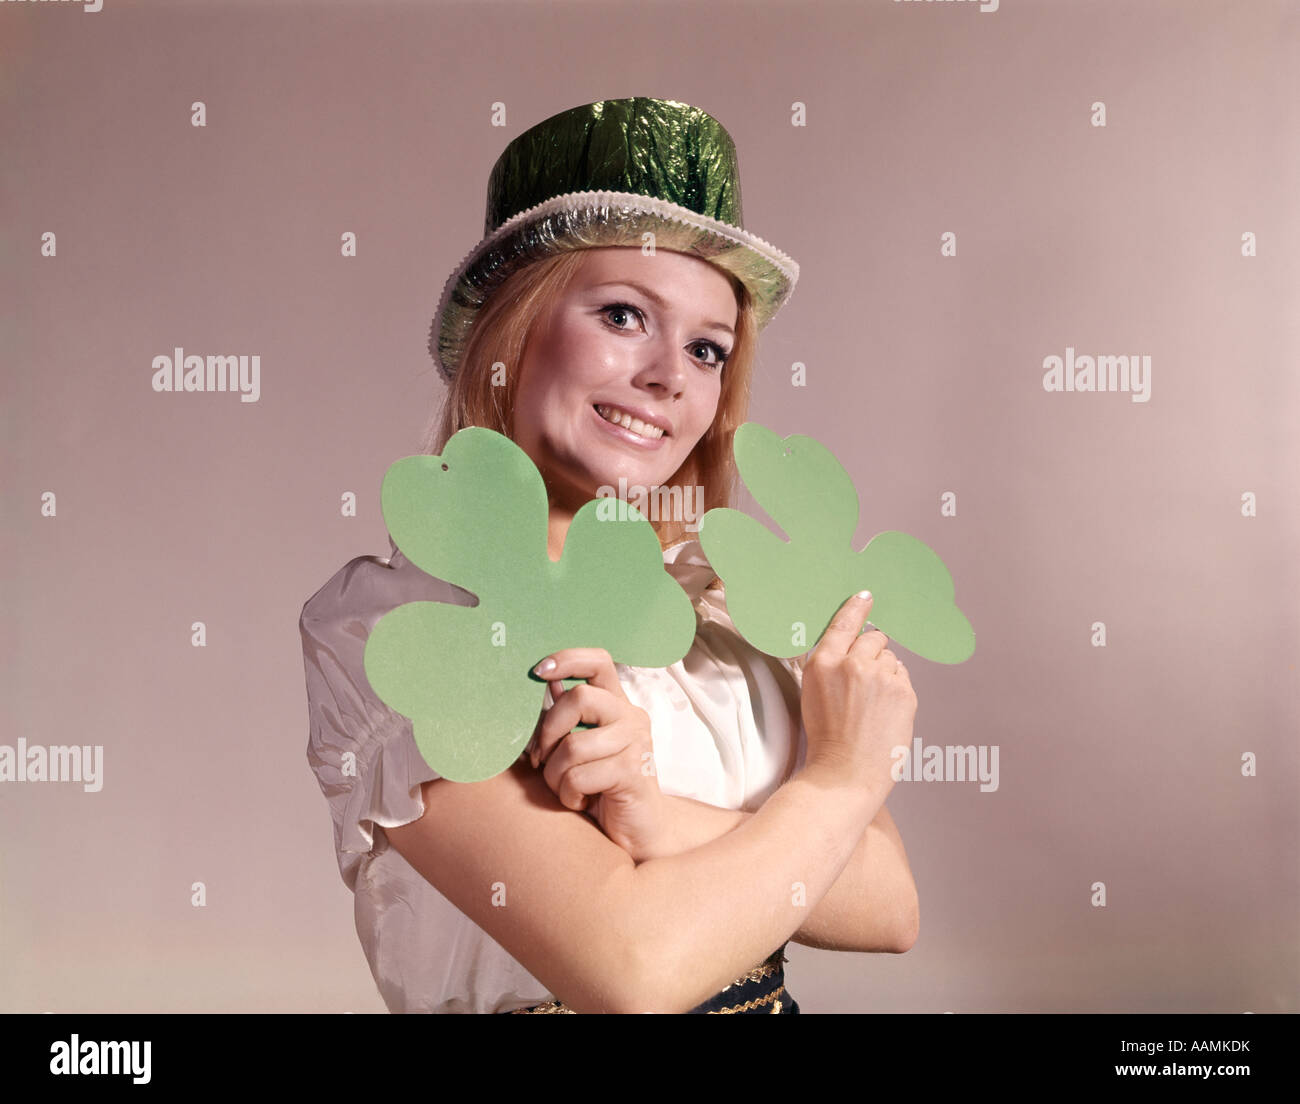 1960s 1970s RETRO IRISH WOMAN SMILING HOLDING GREEN SHAMROCKS AND WEARING GREEN PARTY HAT - Stock Image